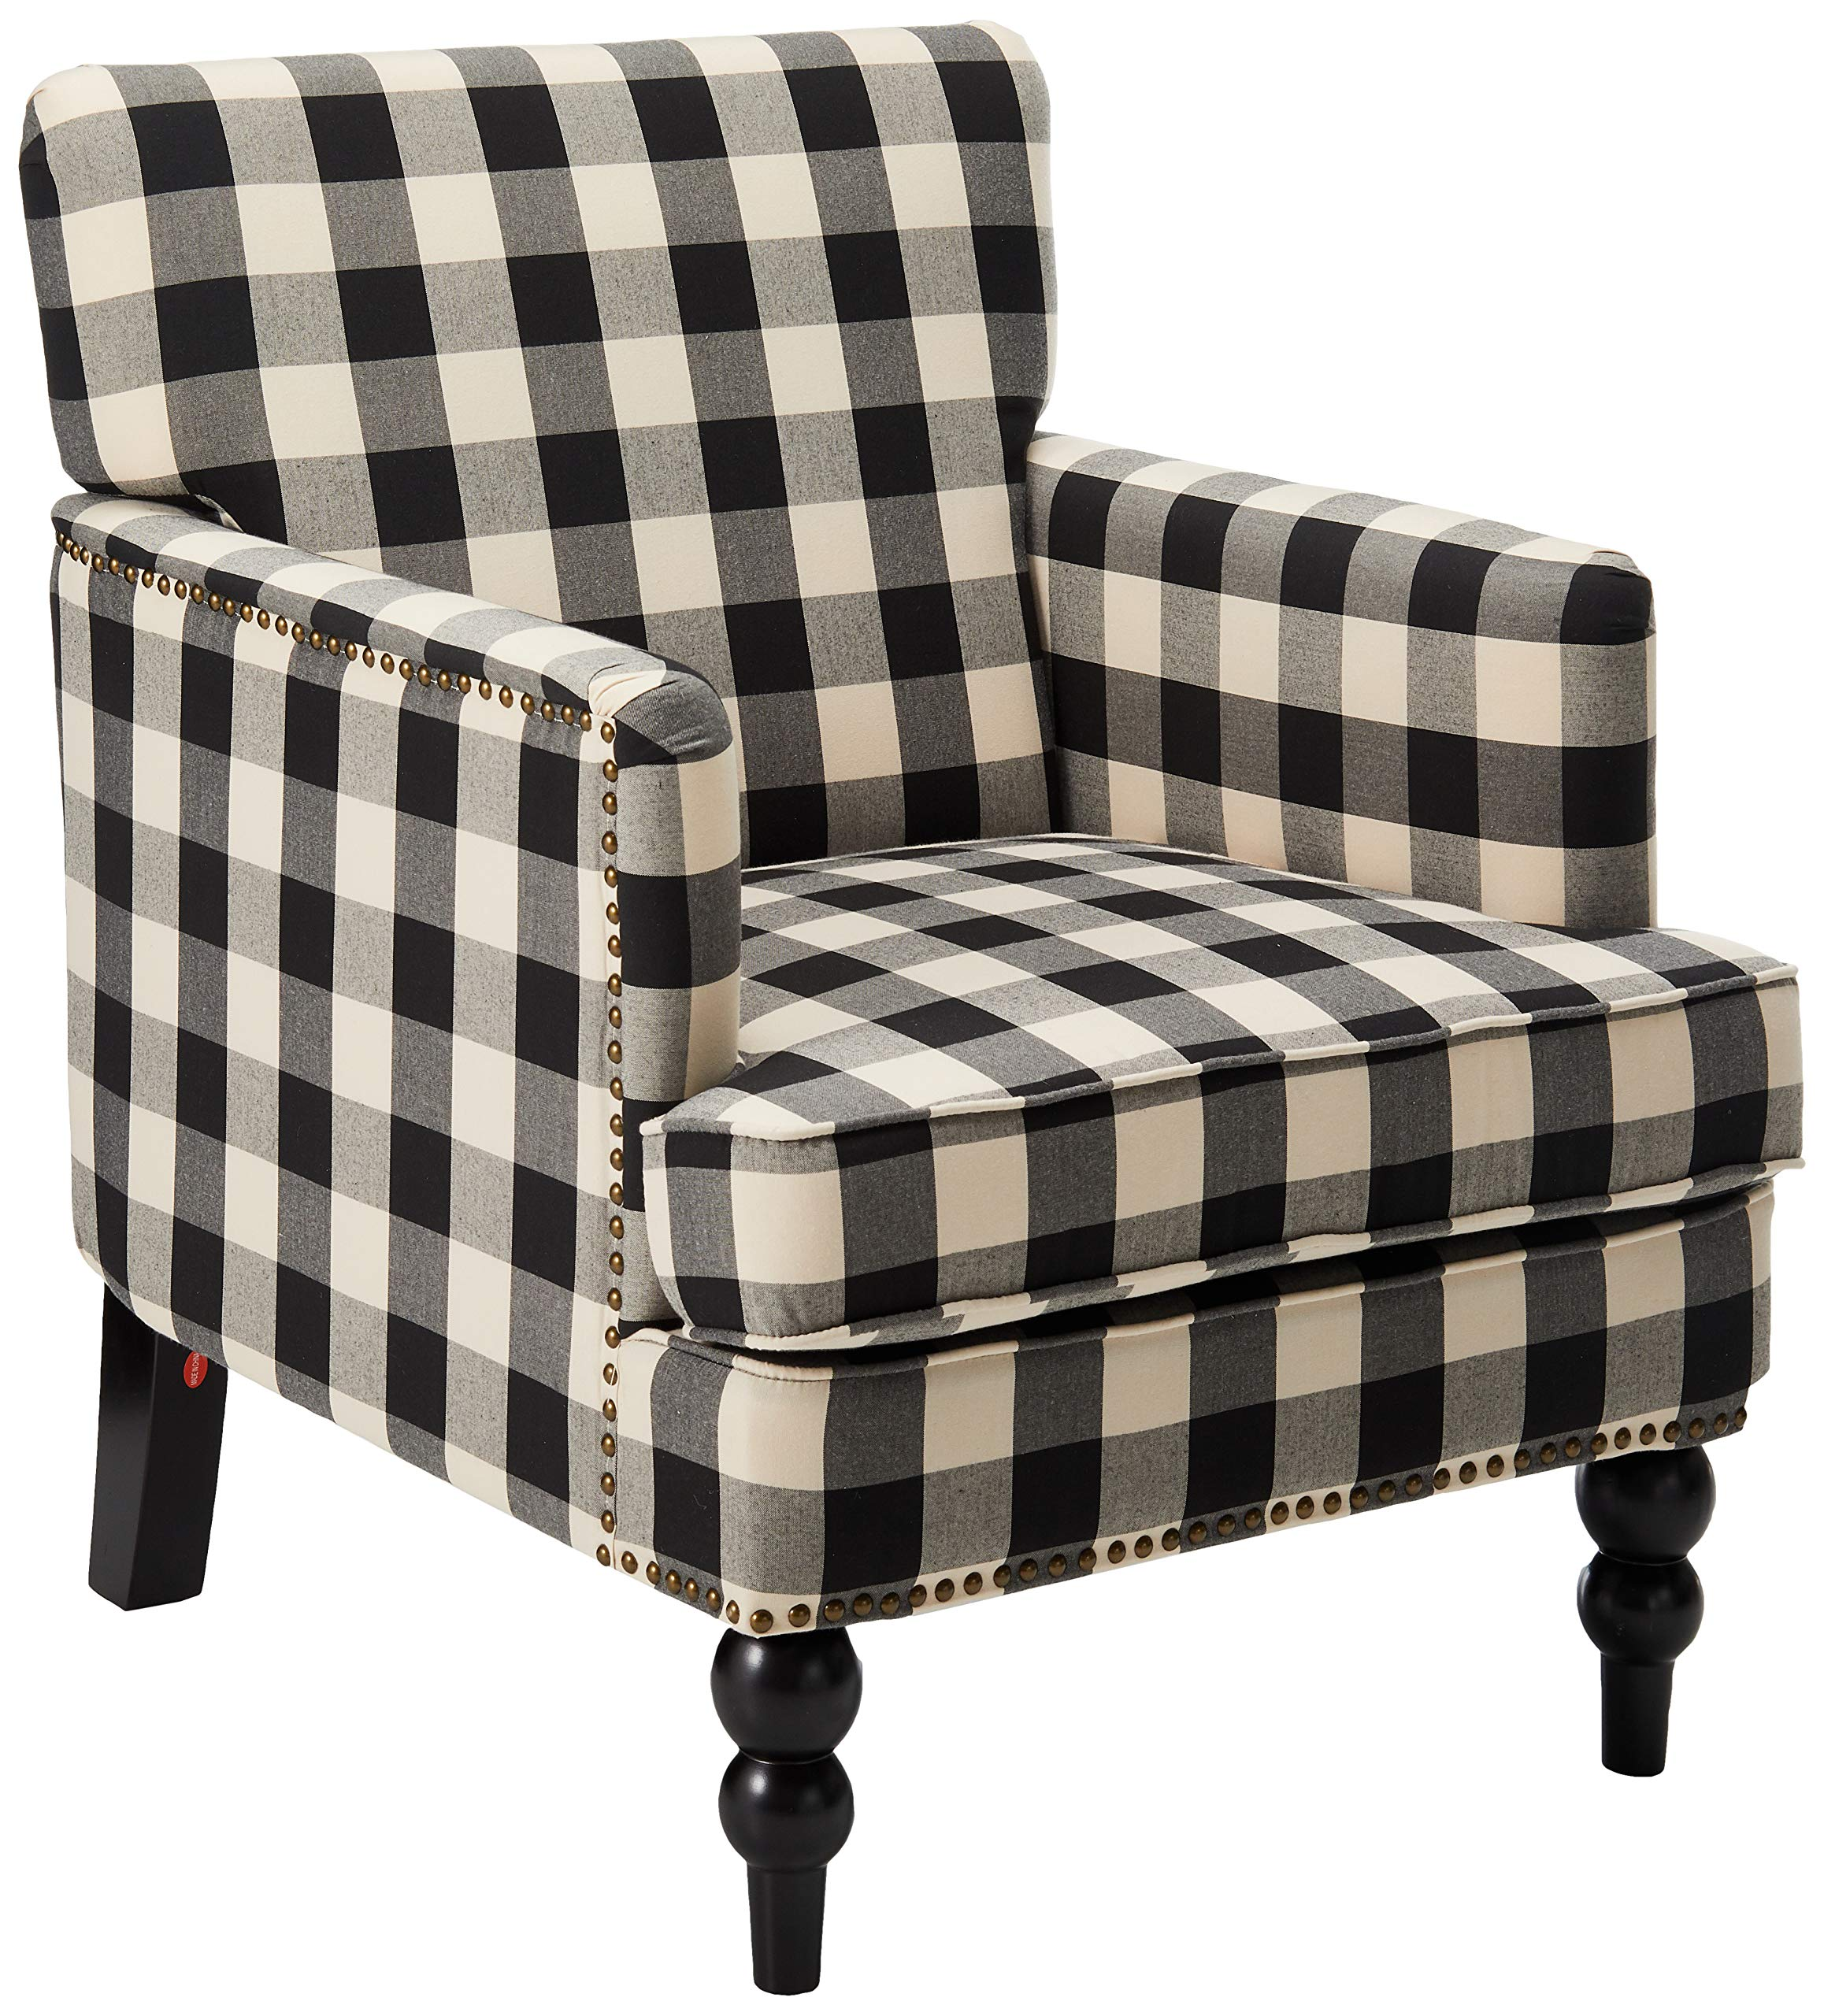 Christopher Knight Home Evete Tufted Fabric Club Chair, Black Checkerboard by Christopher Knight Home